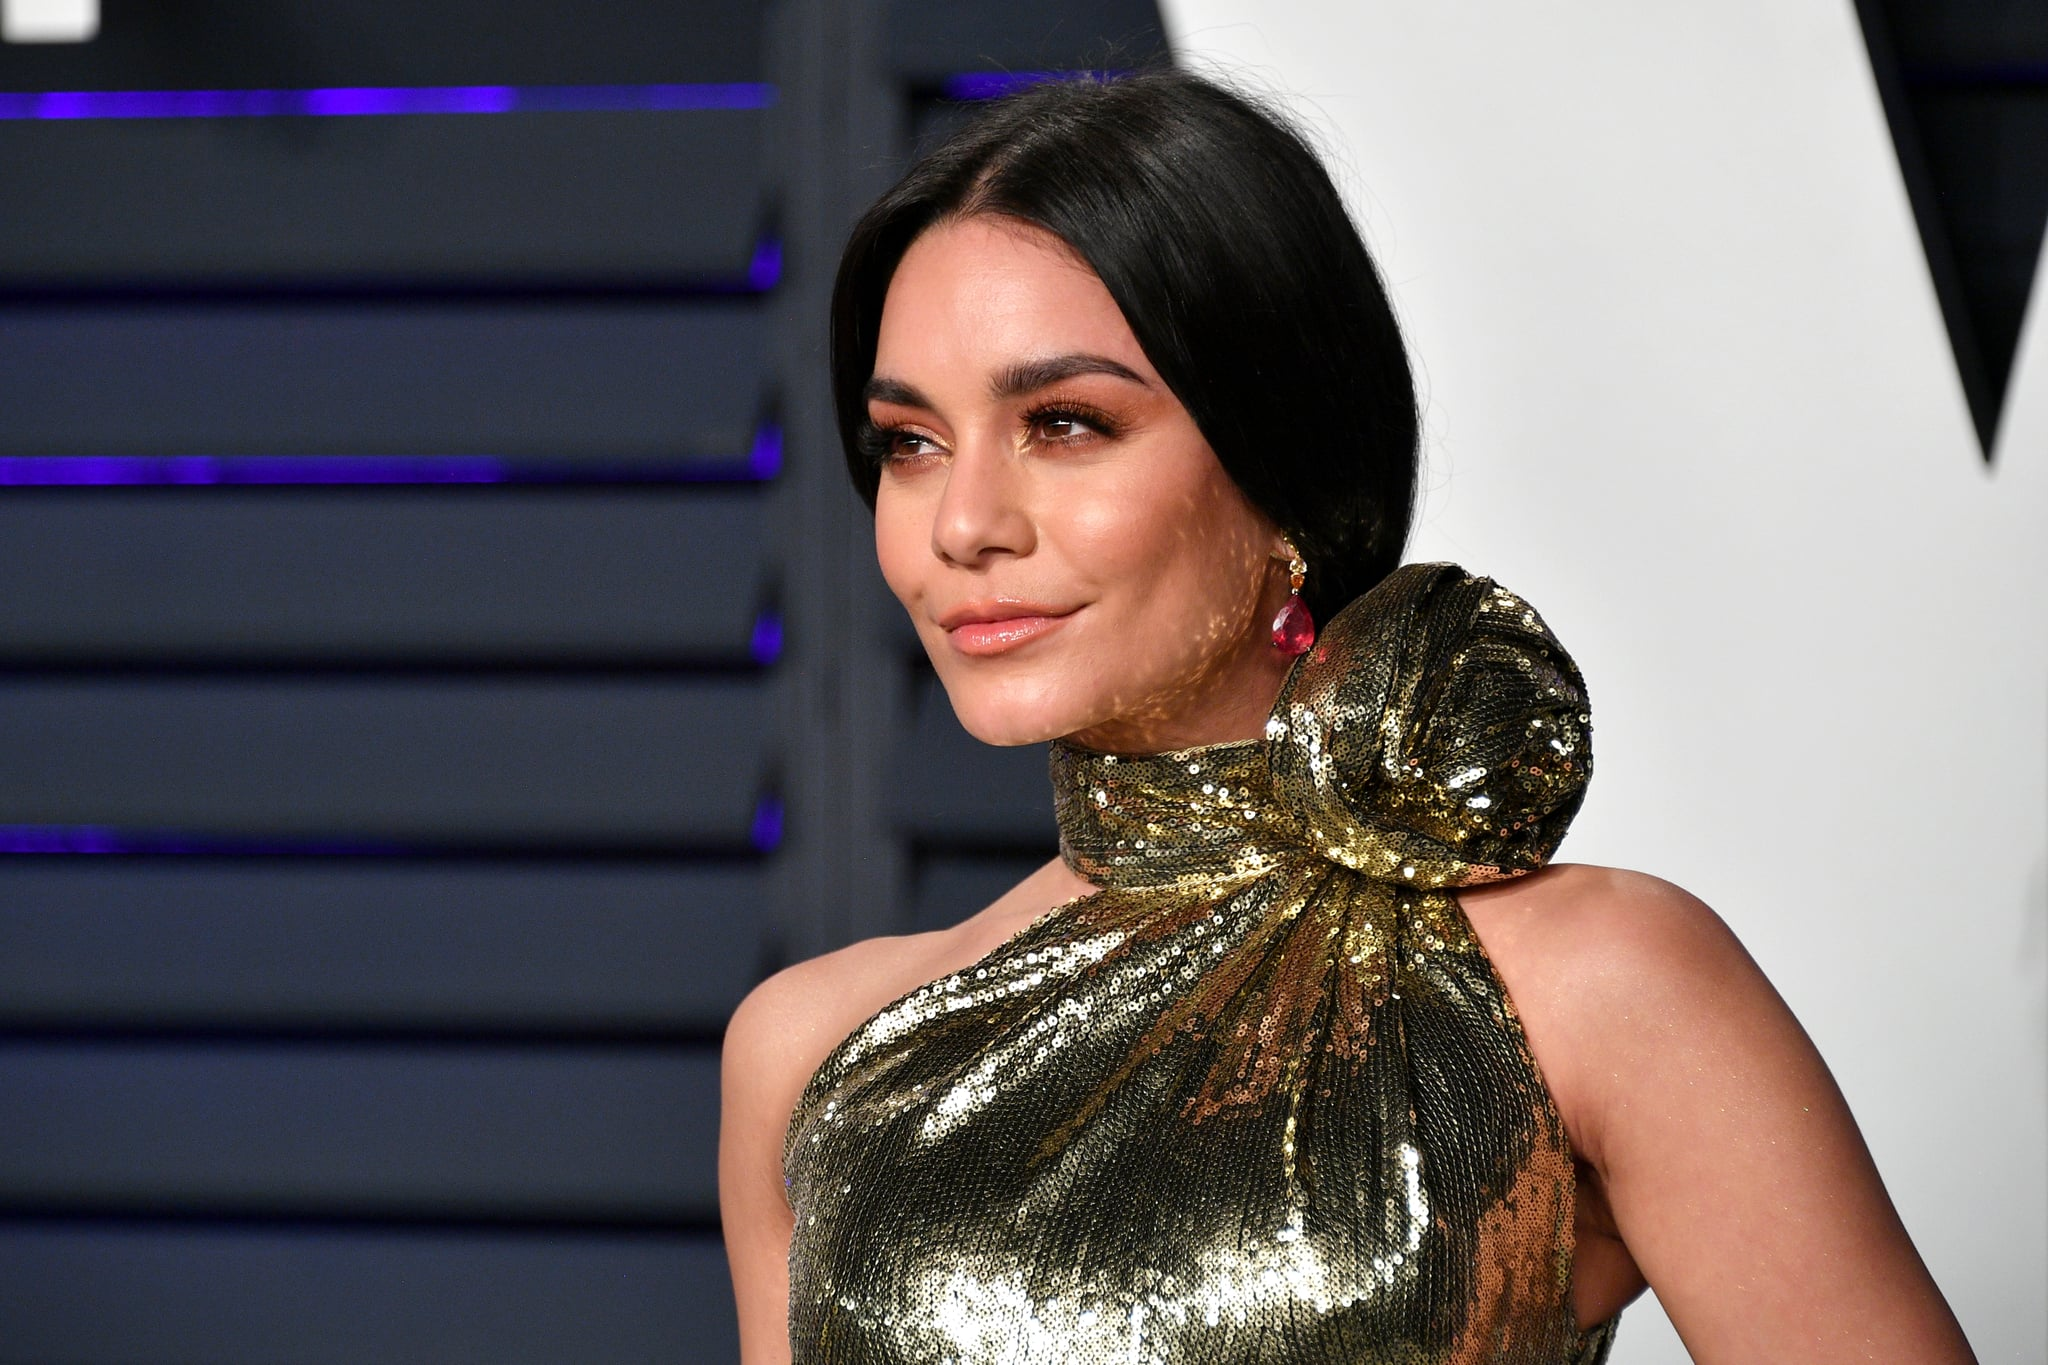 BEVERLY HILLS, CA - FEBRUARY 24:  Vanessa Hudgens attends the 2019 Vanity Fair Oscar Party hosted by Radhika Jones at Wallis Annenberg Centre for the Performing Arts on February 24, 2019 in Beverly Hills, California.  (Photo by Dia Dipasupil/Getty Images)